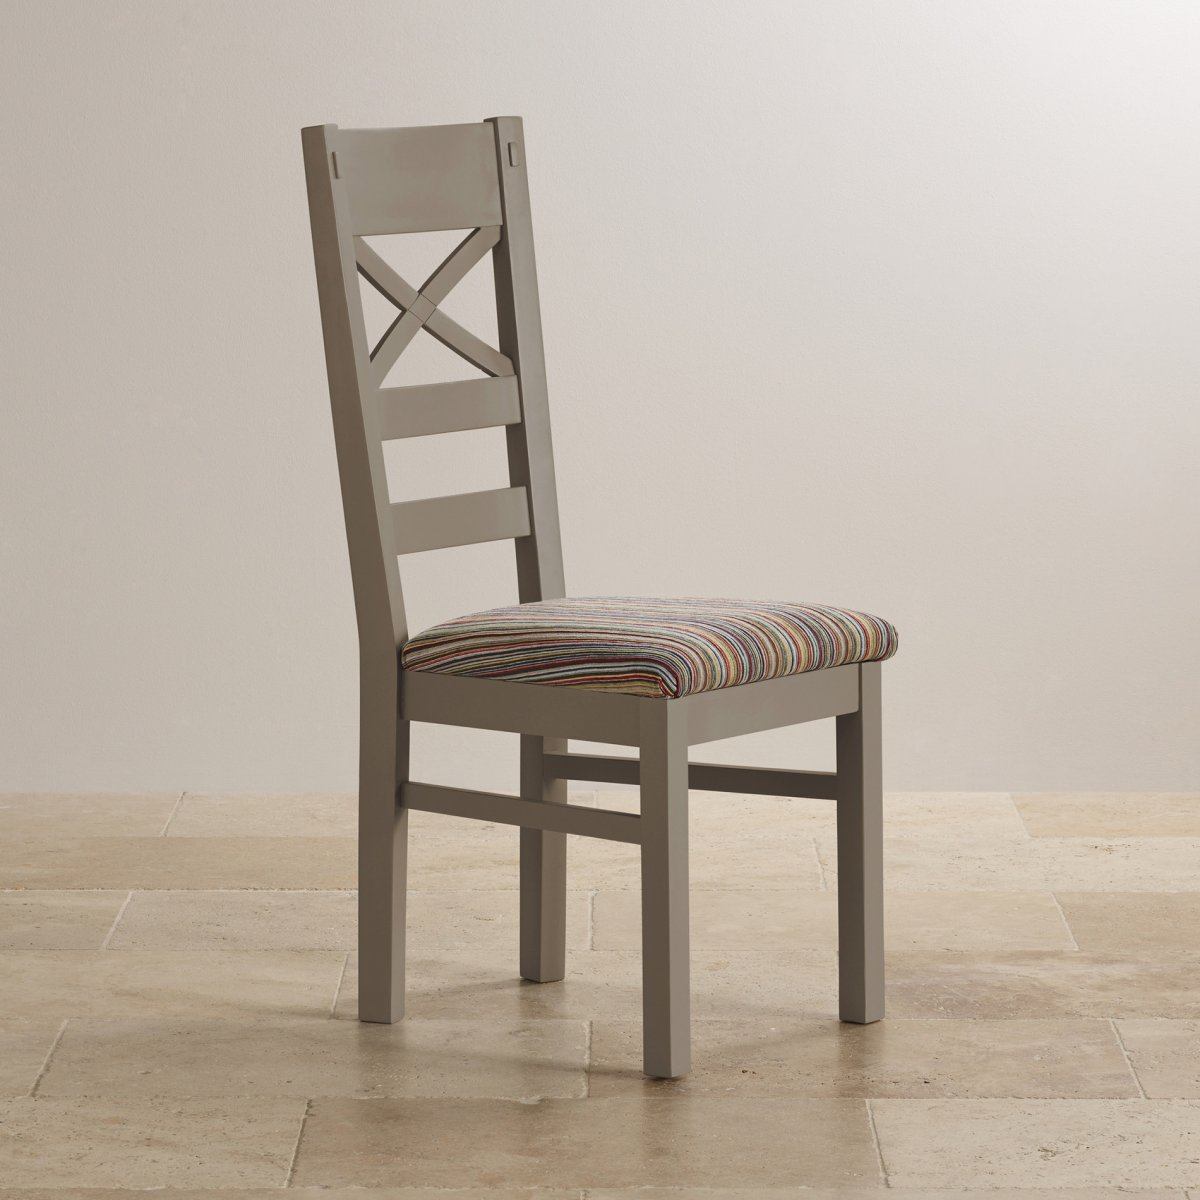 St Ives Dining Chair In Grey Painted Acacia Striped Fabric